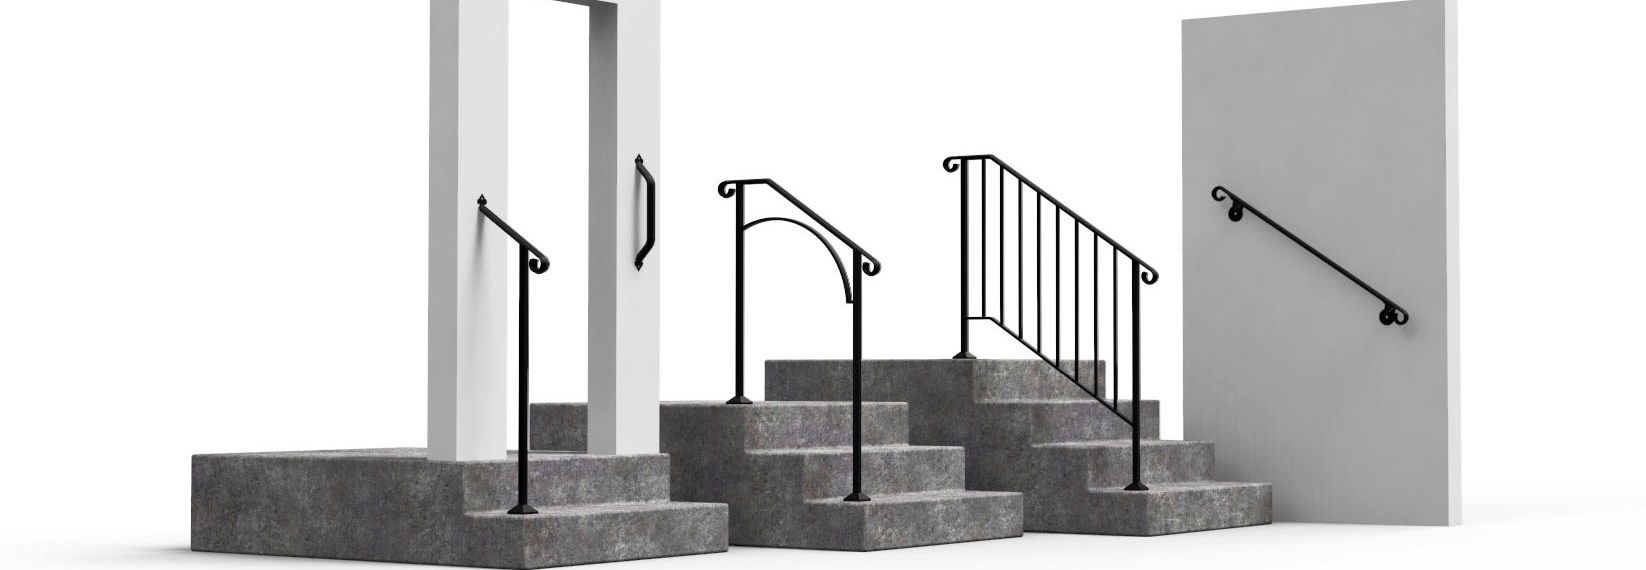 Shop Diy Wrought Iron Handrail Handrails For Indoor Outdoor Steps   Stair Rails For Elderly   Stair Climbing   Down Stairs   Wood   Cmmc Handrail   Pipe